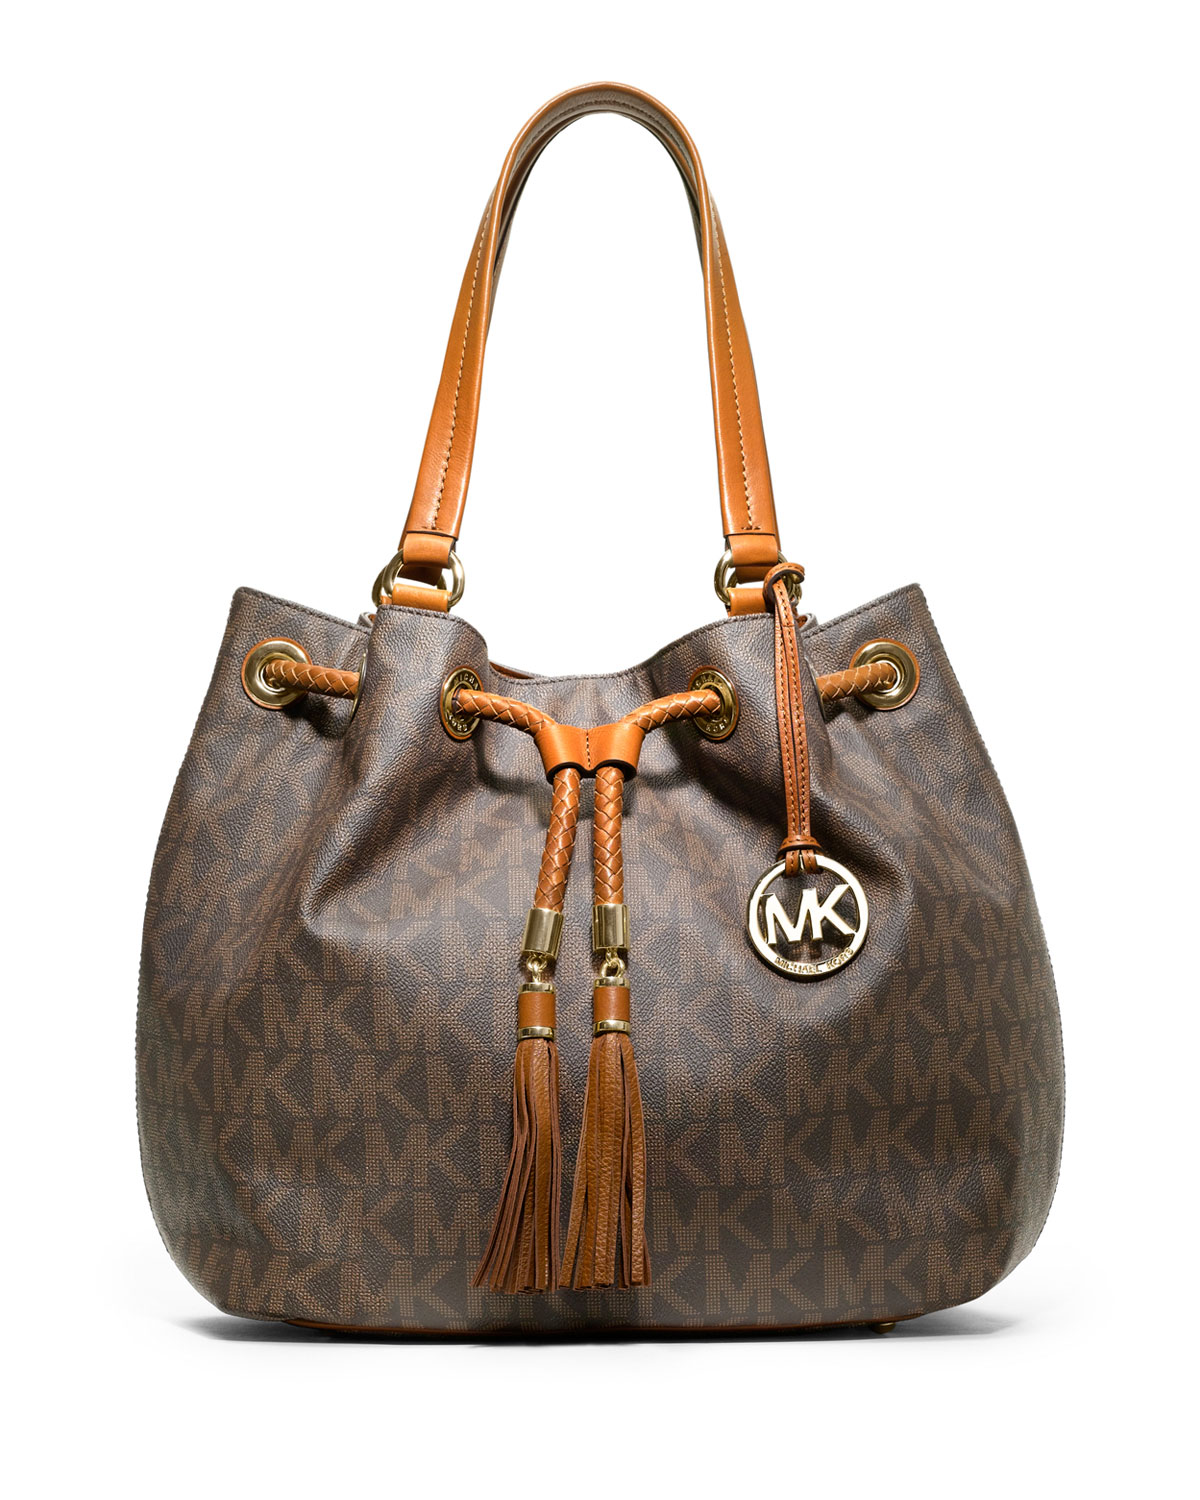 MICHAEL Michael Kors Jet Set Large Gathered Tote Bag 771d7828426b0